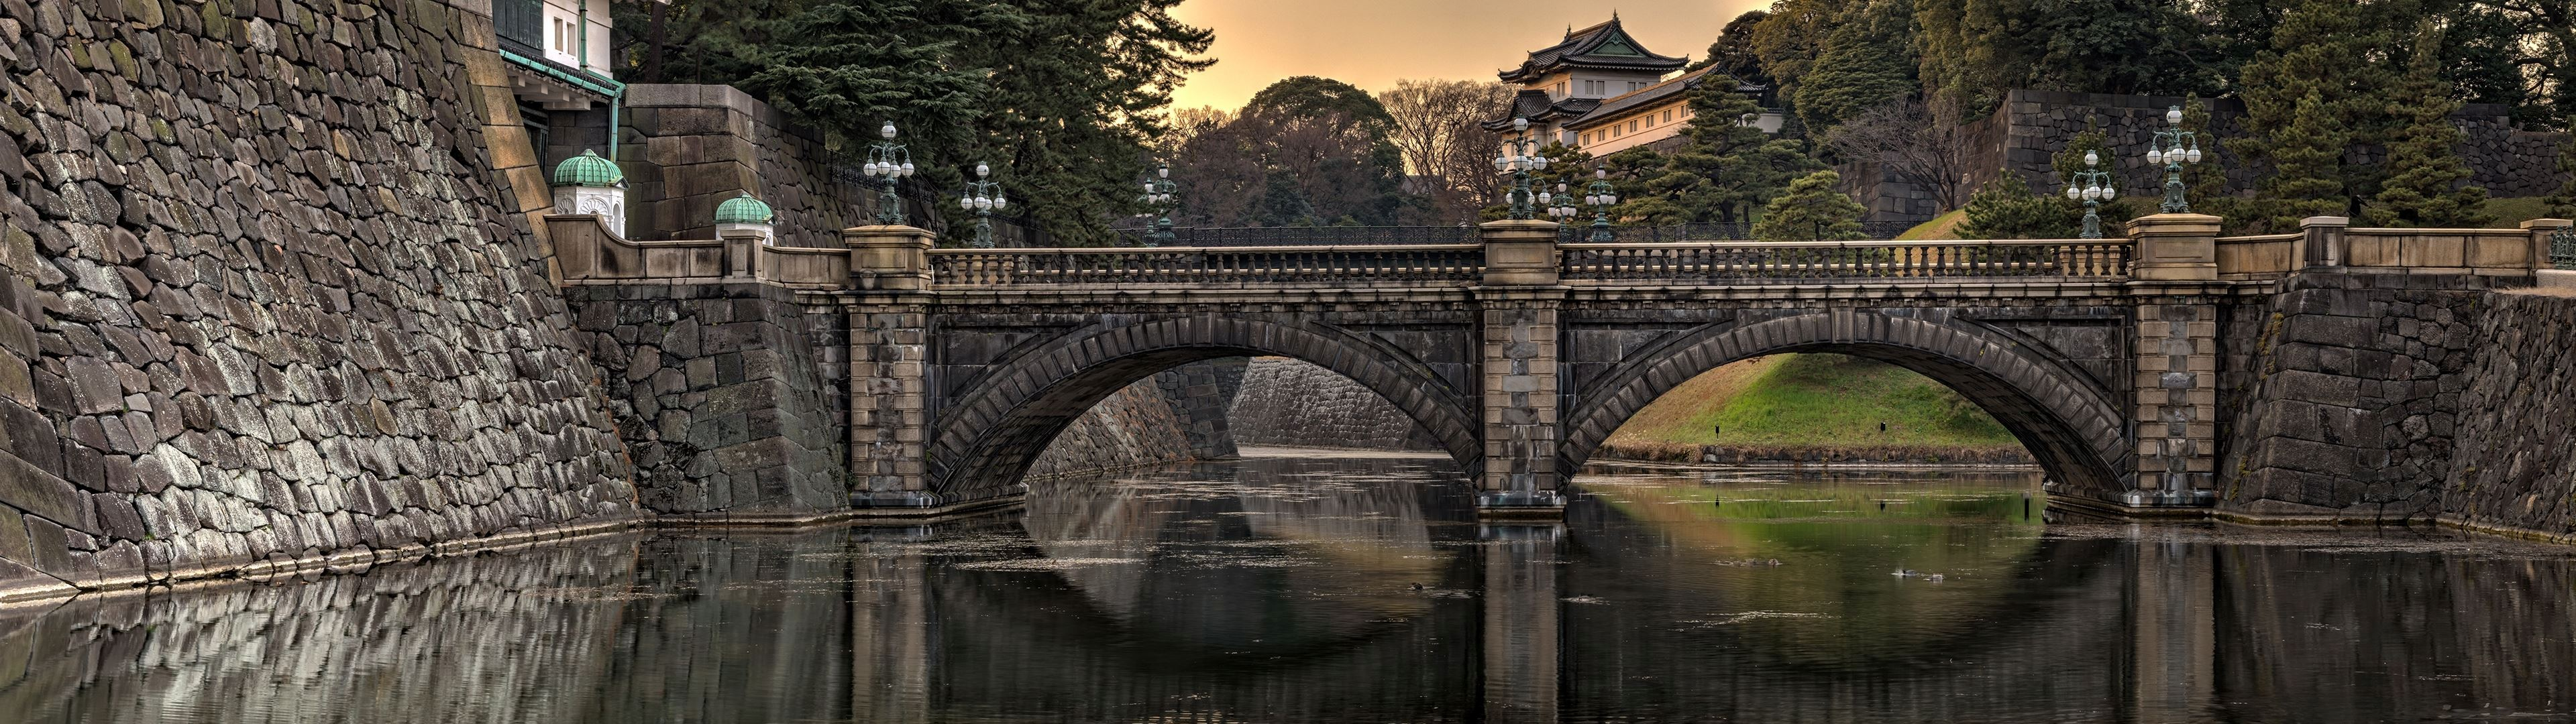 WallpaperFusion-imperial-palace-Original-3840x1200rc.jpg